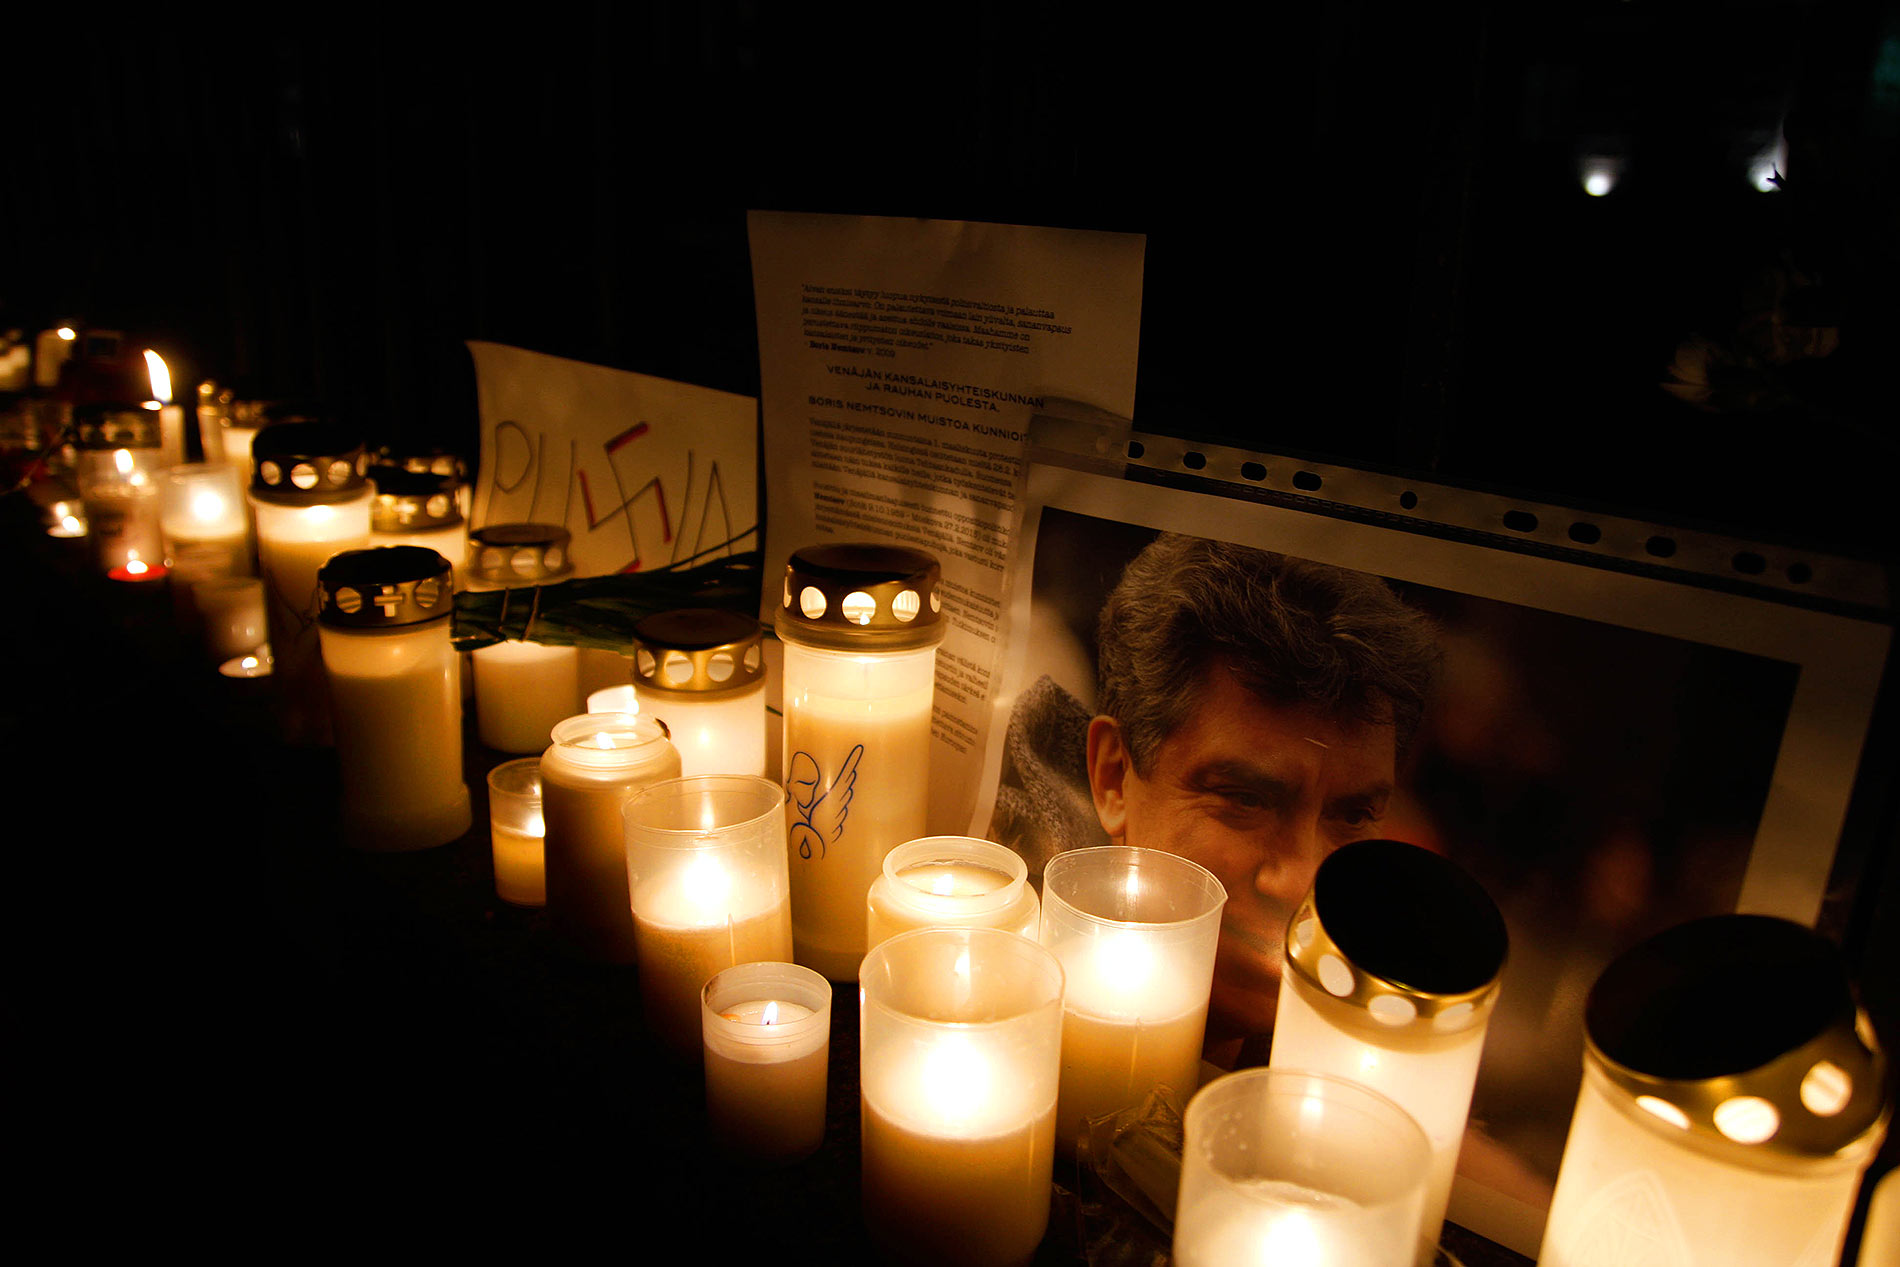 Helsinki Mourns For the Murdered Russian Opposition Leader Boris Nemtsov